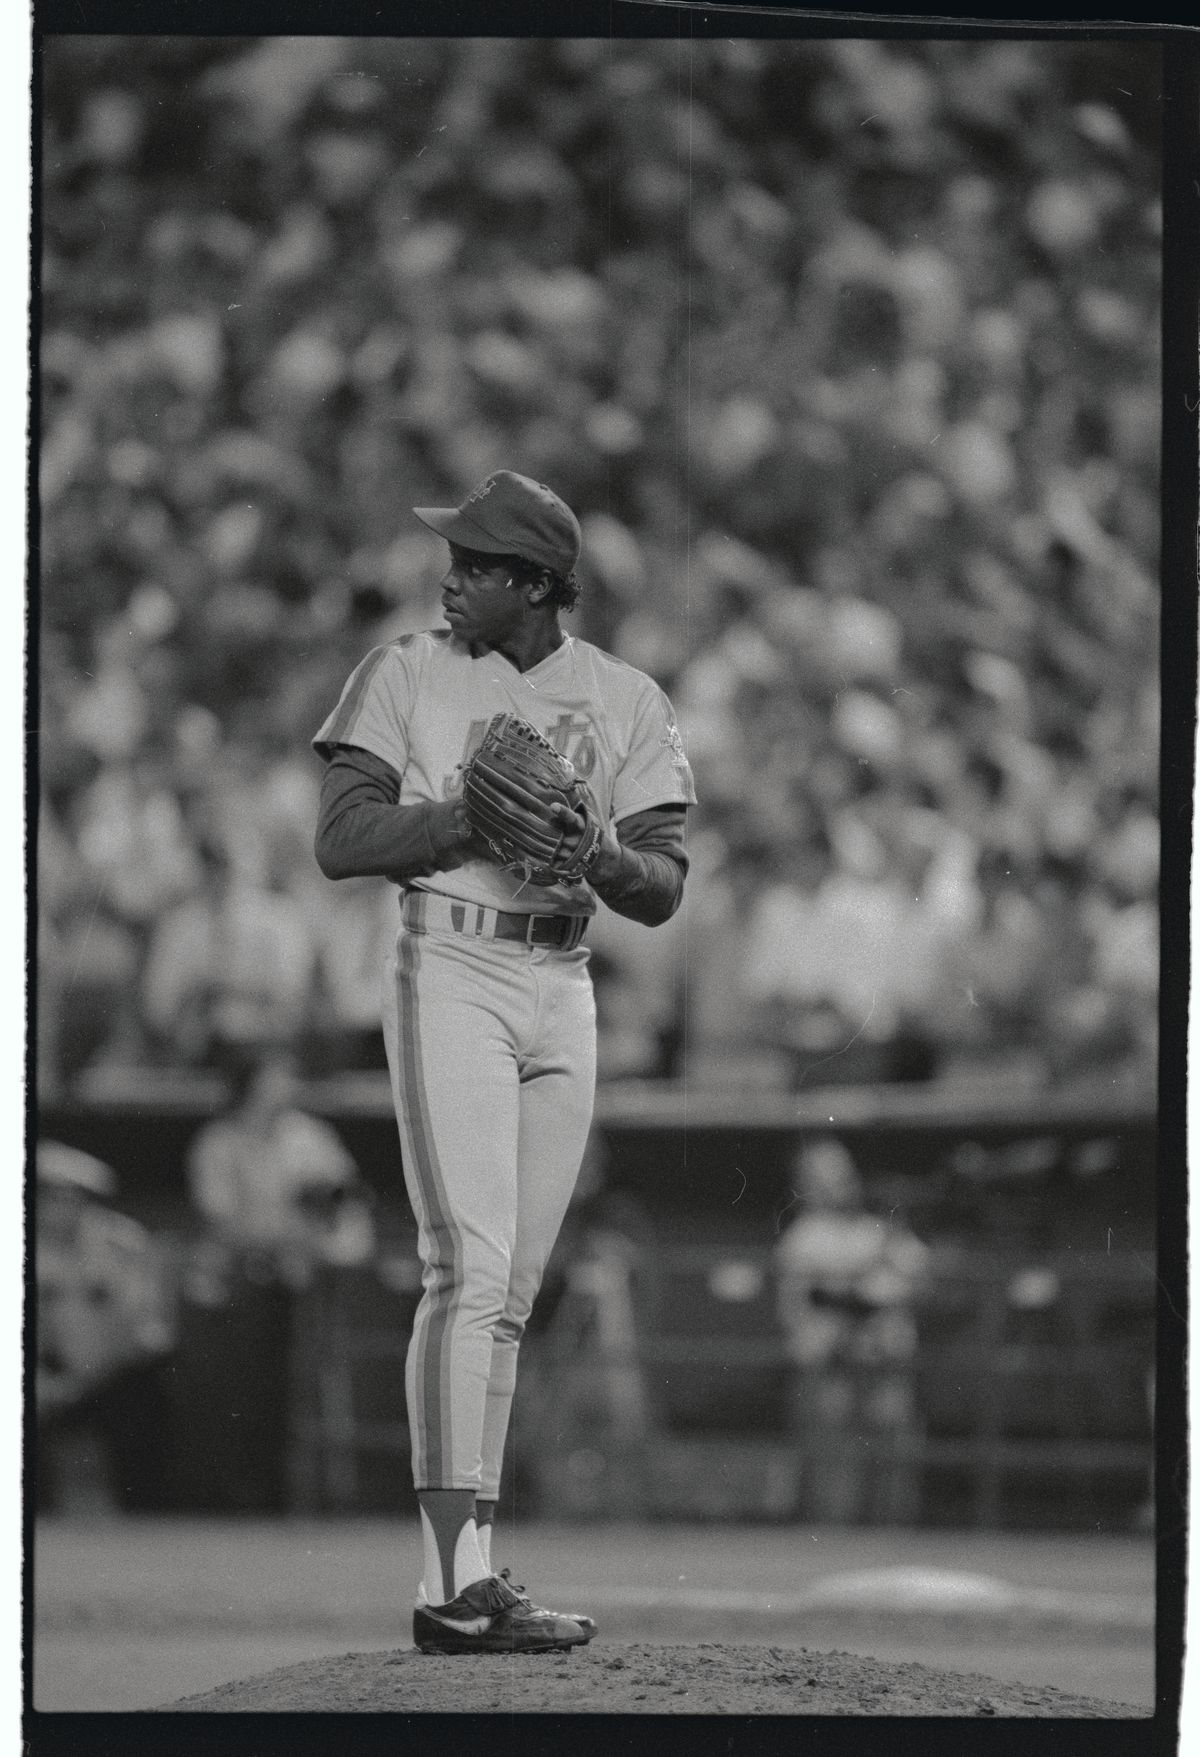 Dwight Gooden Standing with Head Down